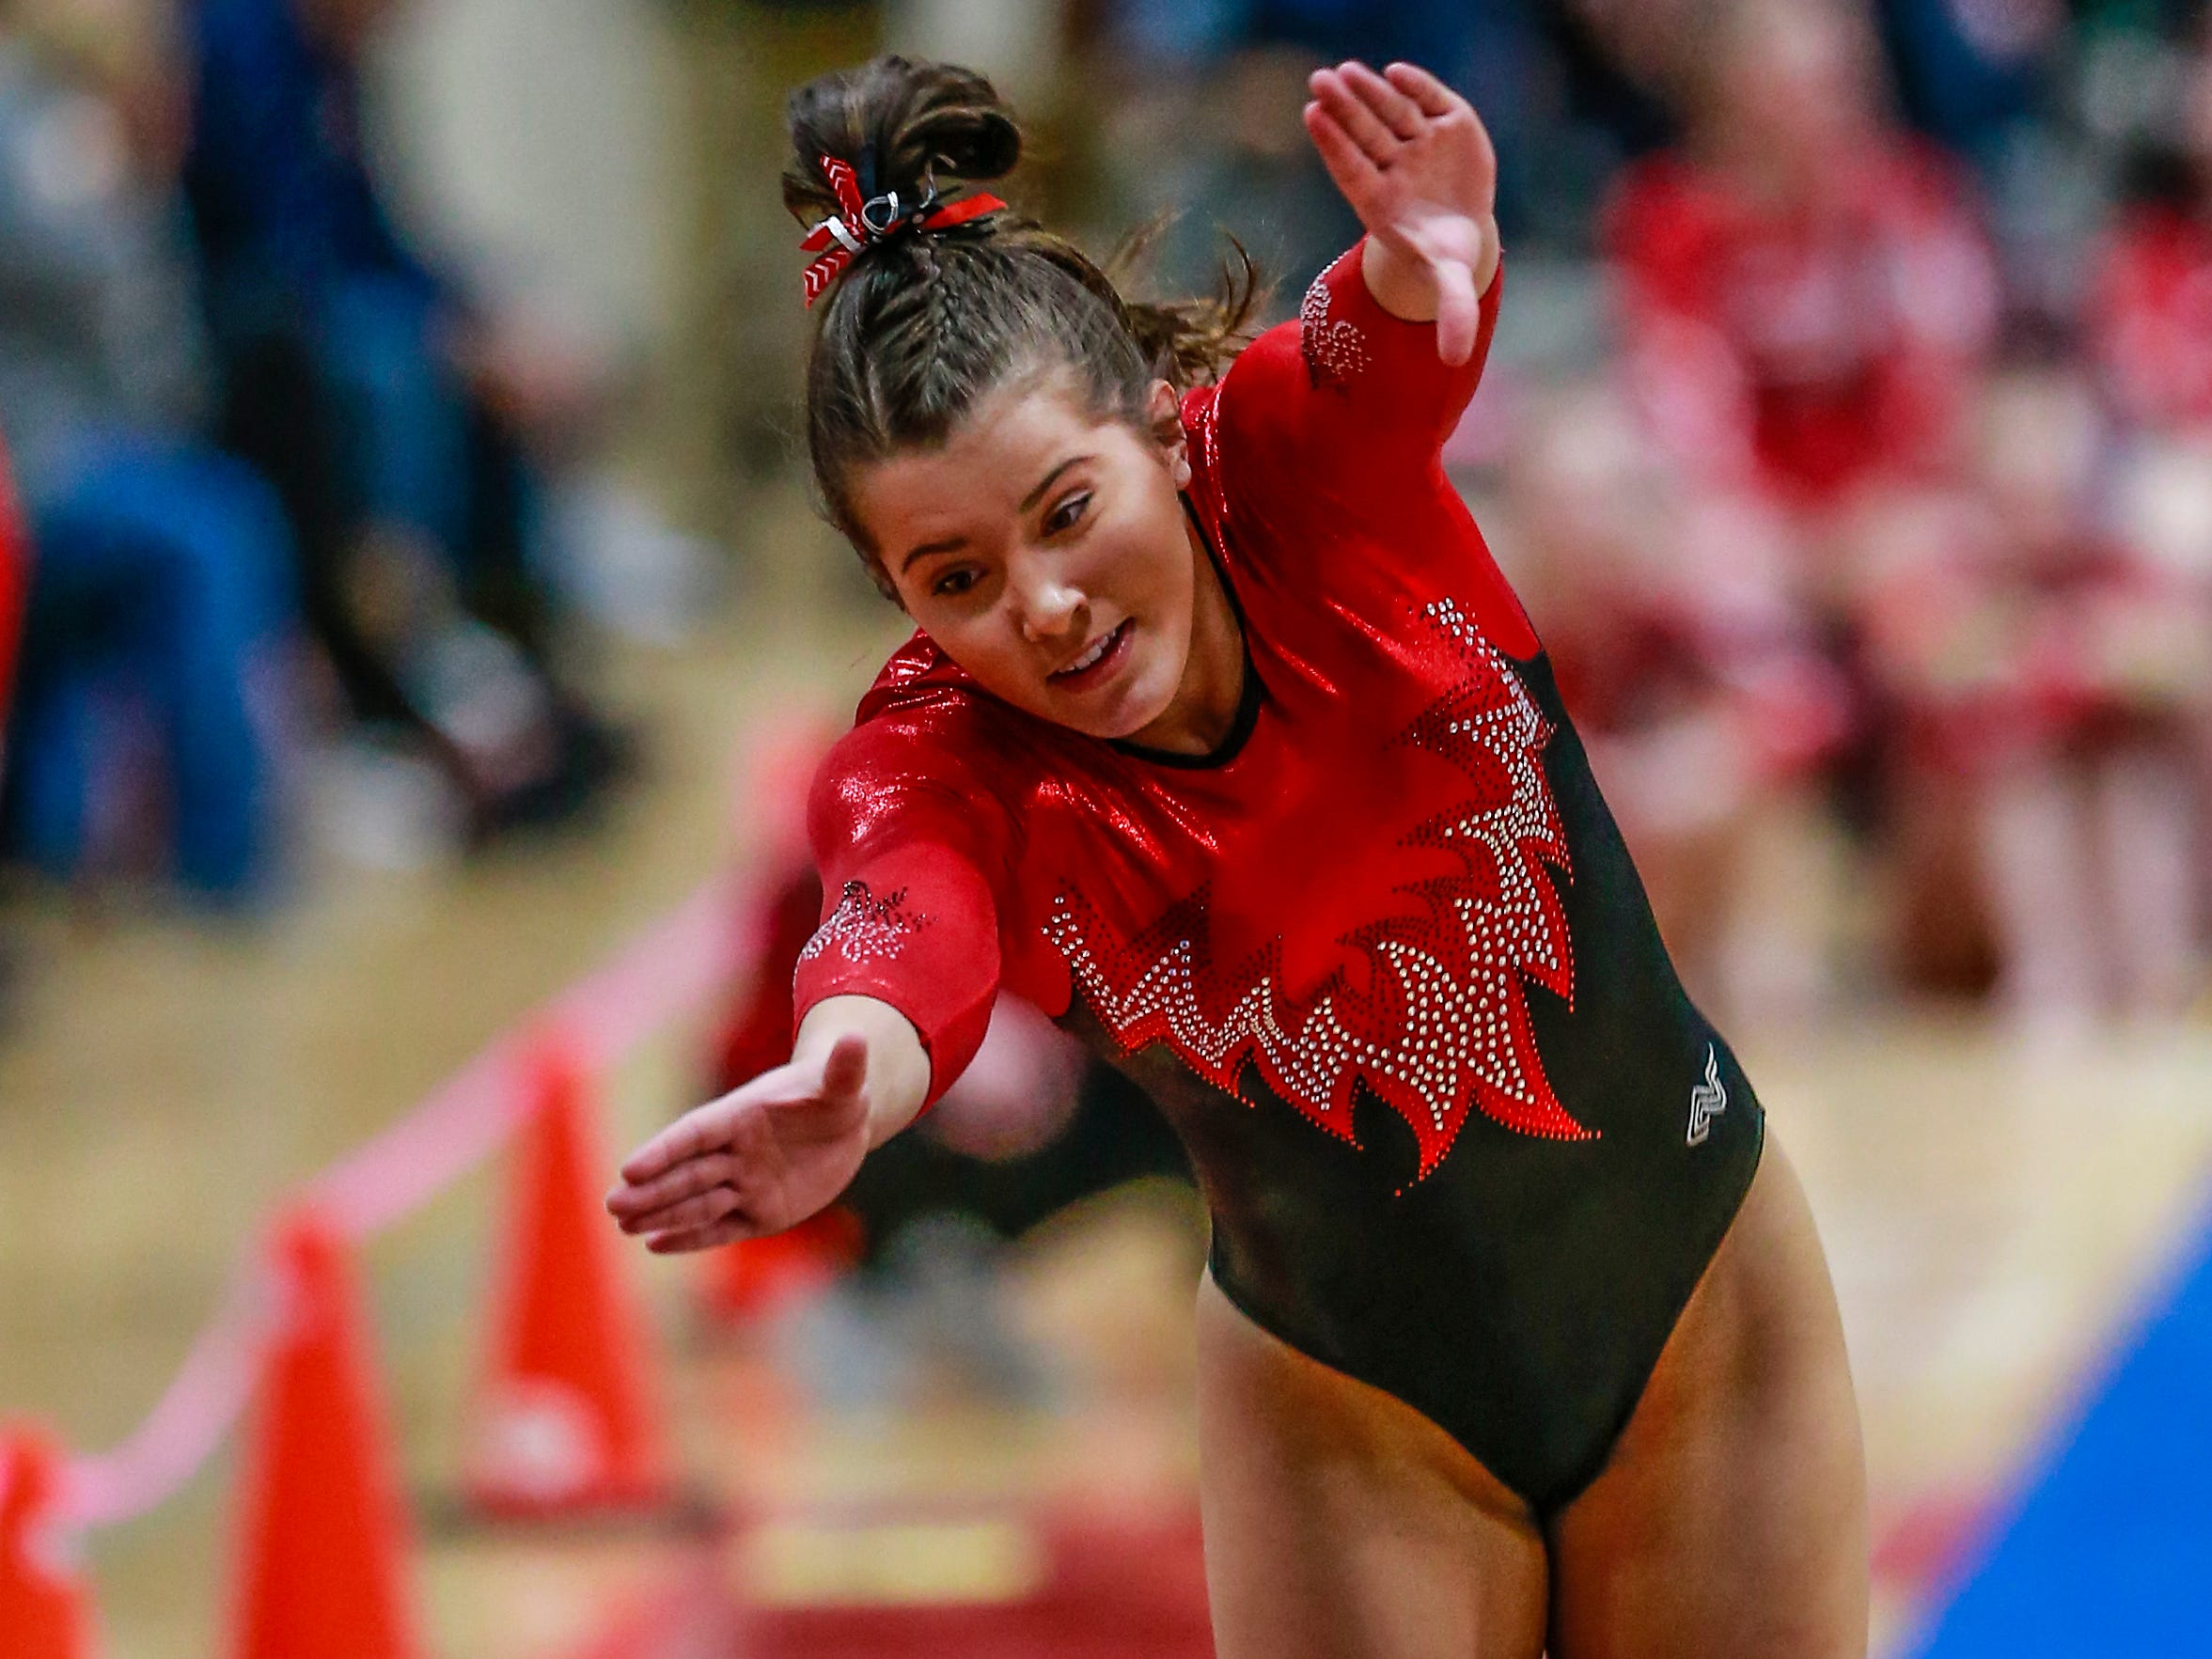 Medford's Maddy Wanke competes in the vaulting during WIAA state gymnastics competition Friday, March 1, 2019, at Lincoln High School Field House in Wisconsin Rapids, Wis. T'xer Zhon Kha/USA TODAY NETWORK-Wisconsin